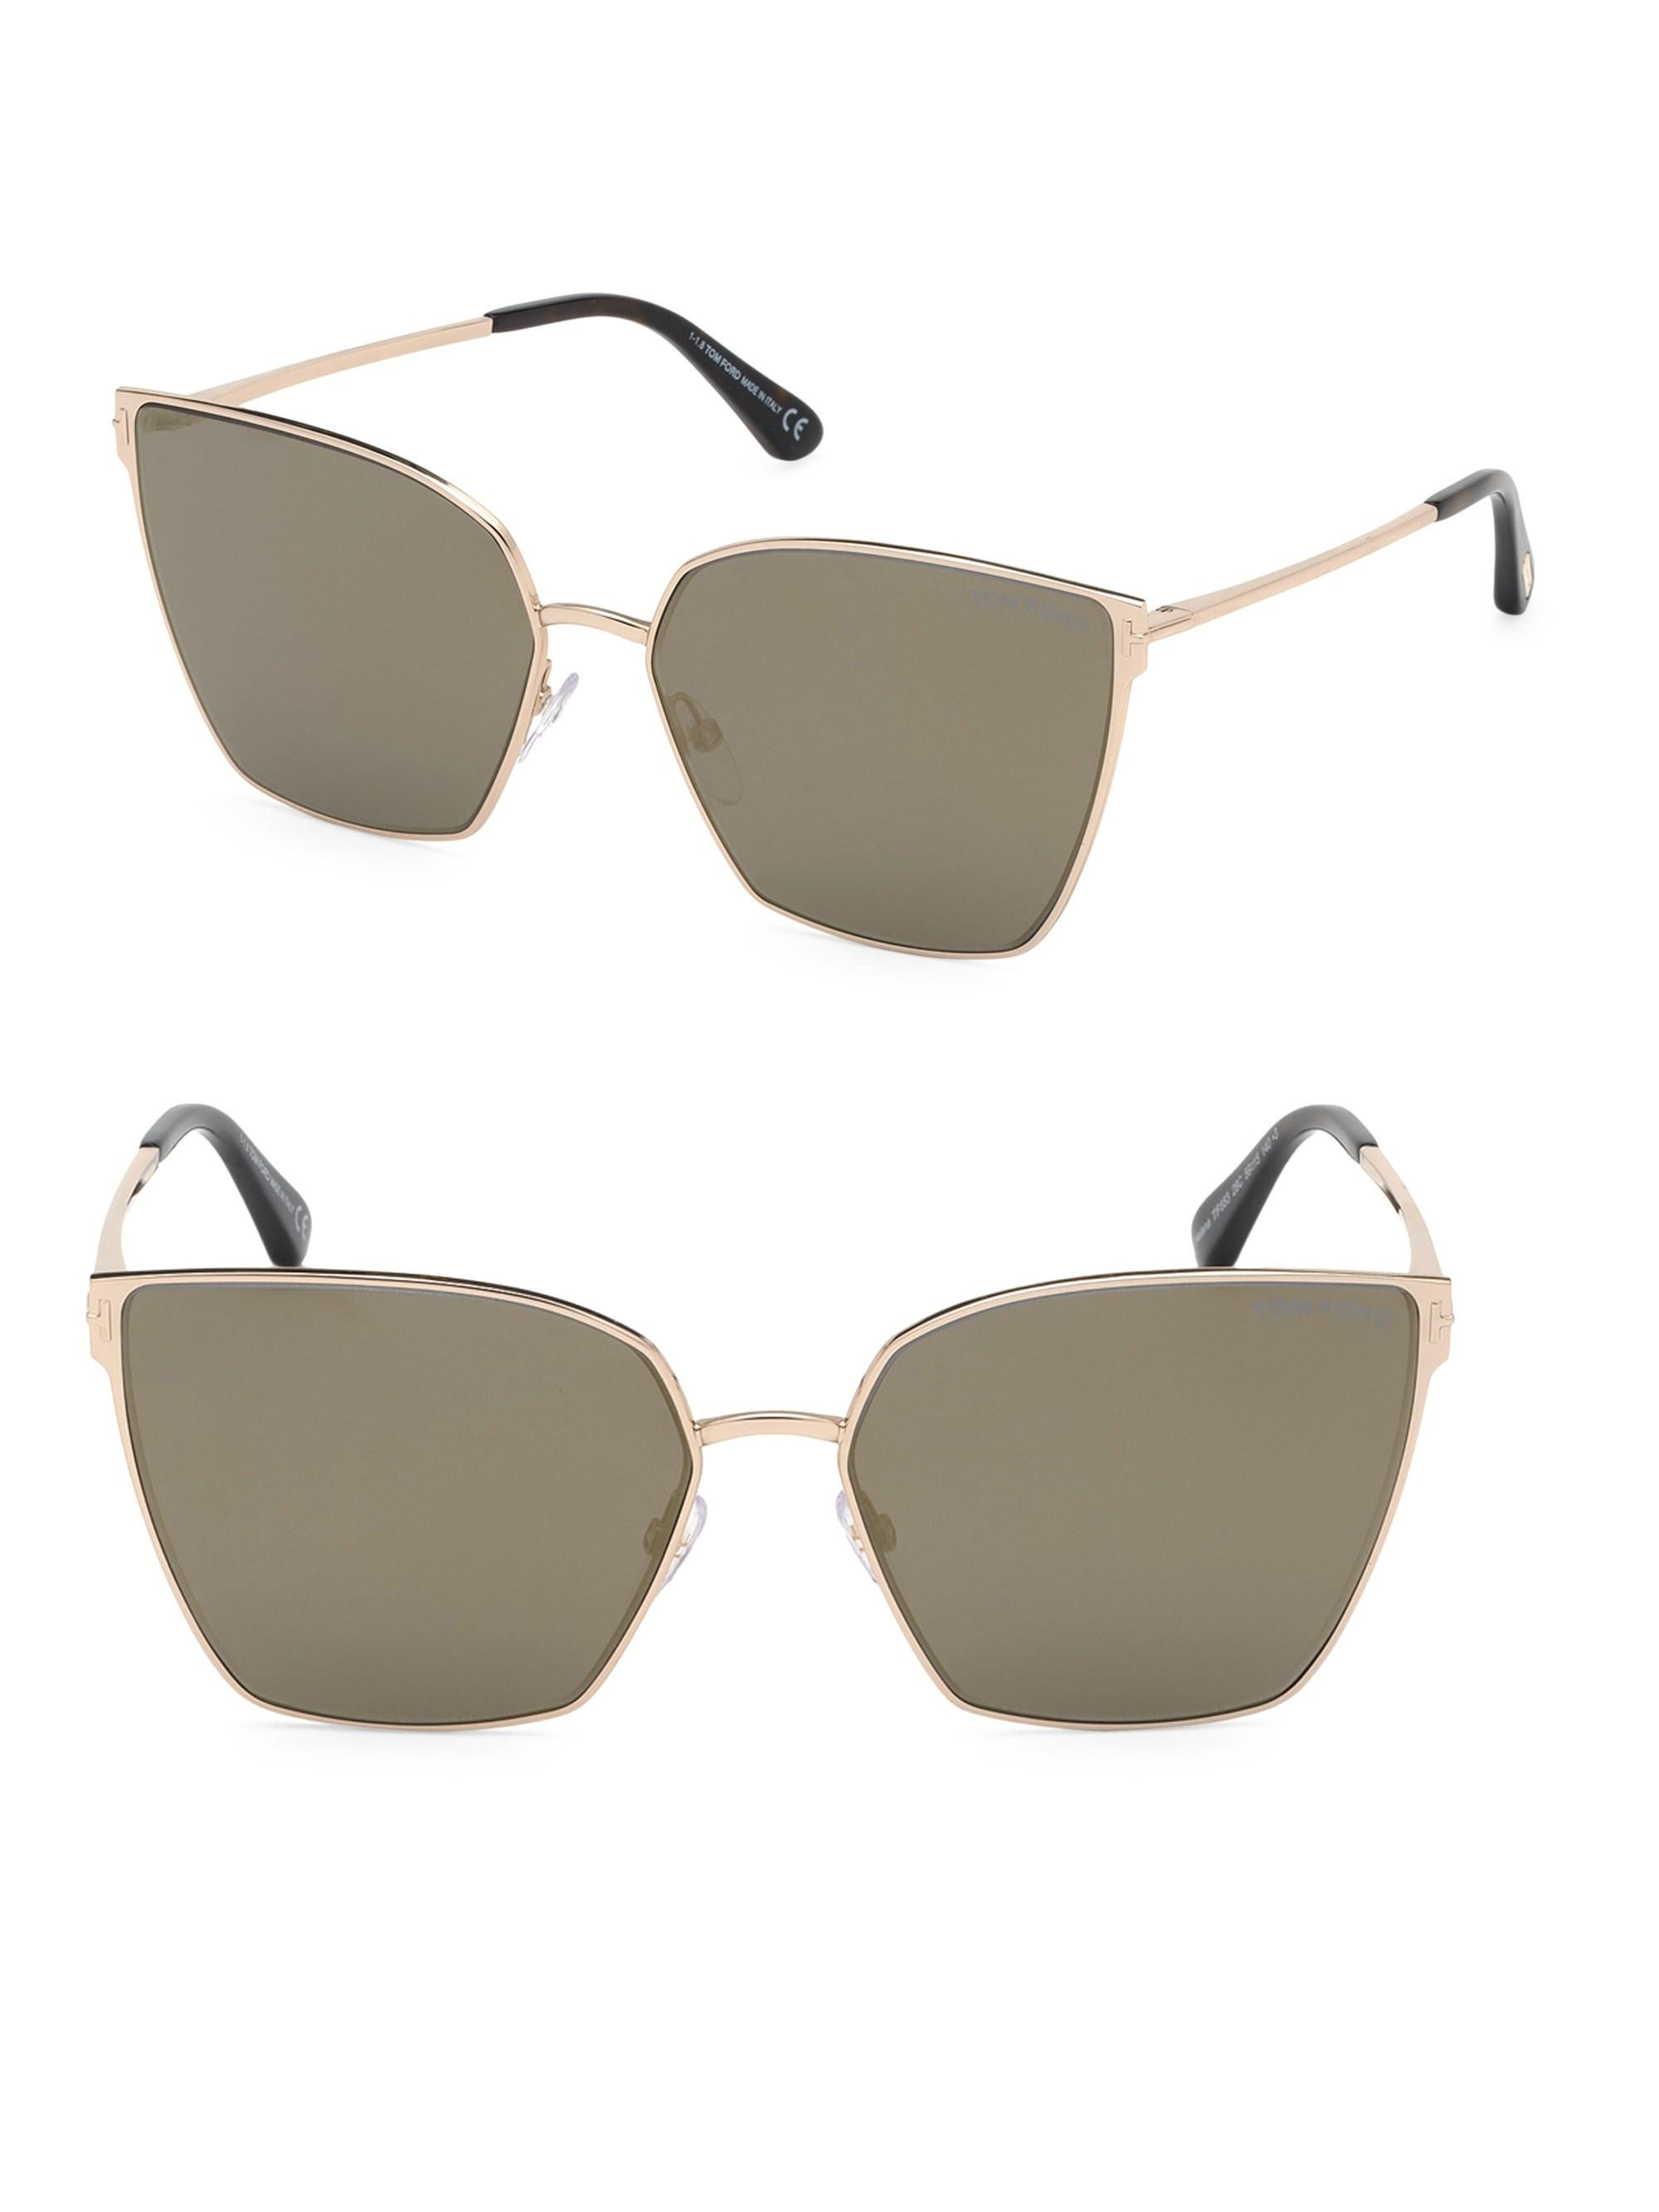 4cad852875 Tom Ford. Women s Helena 59mm Cat Eye Sunglasses - Gold Smoke.  460 From Saks  Fifth Avenue